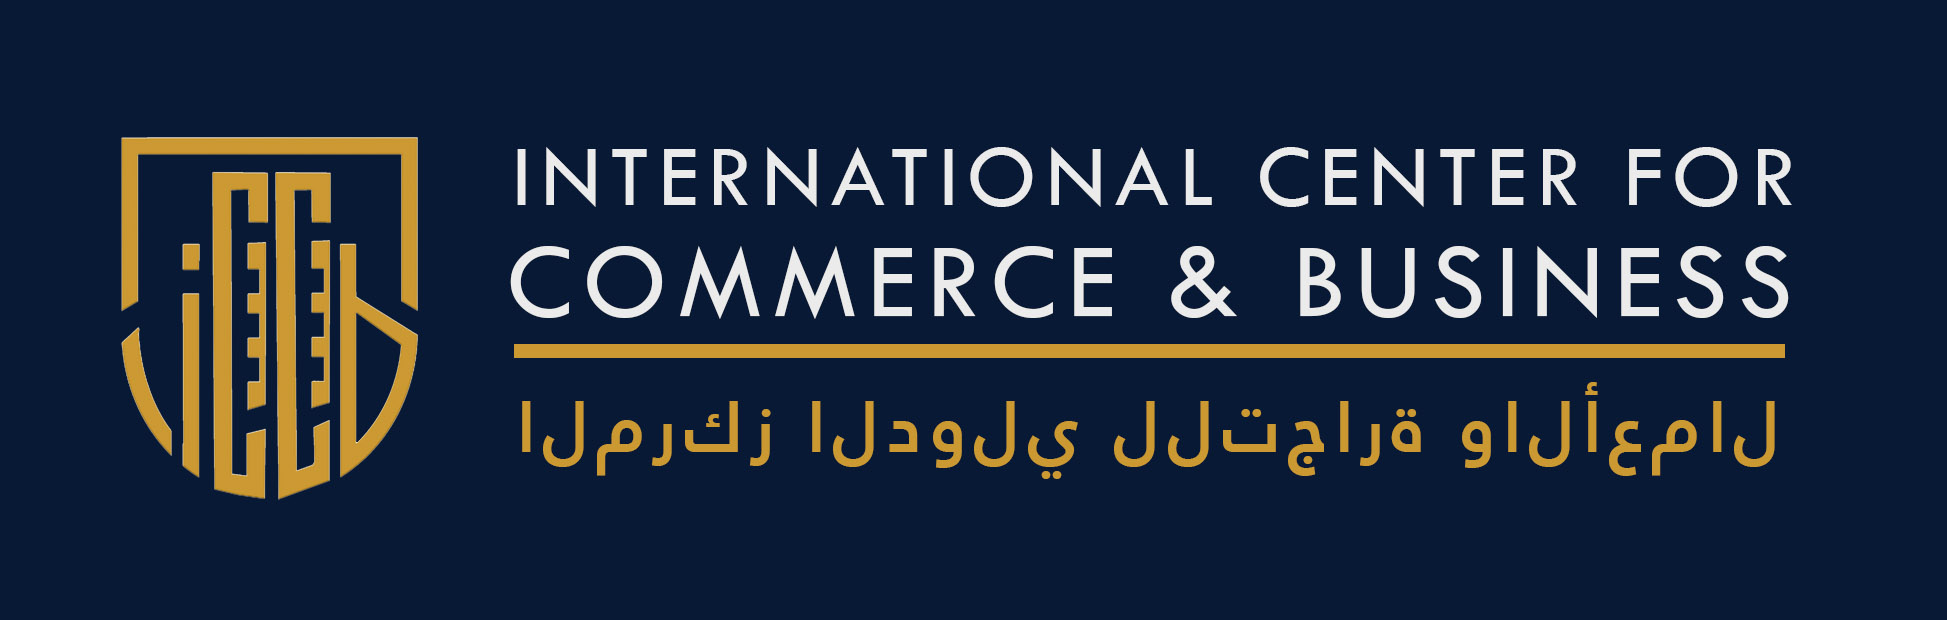 ICCB English arabicLogo